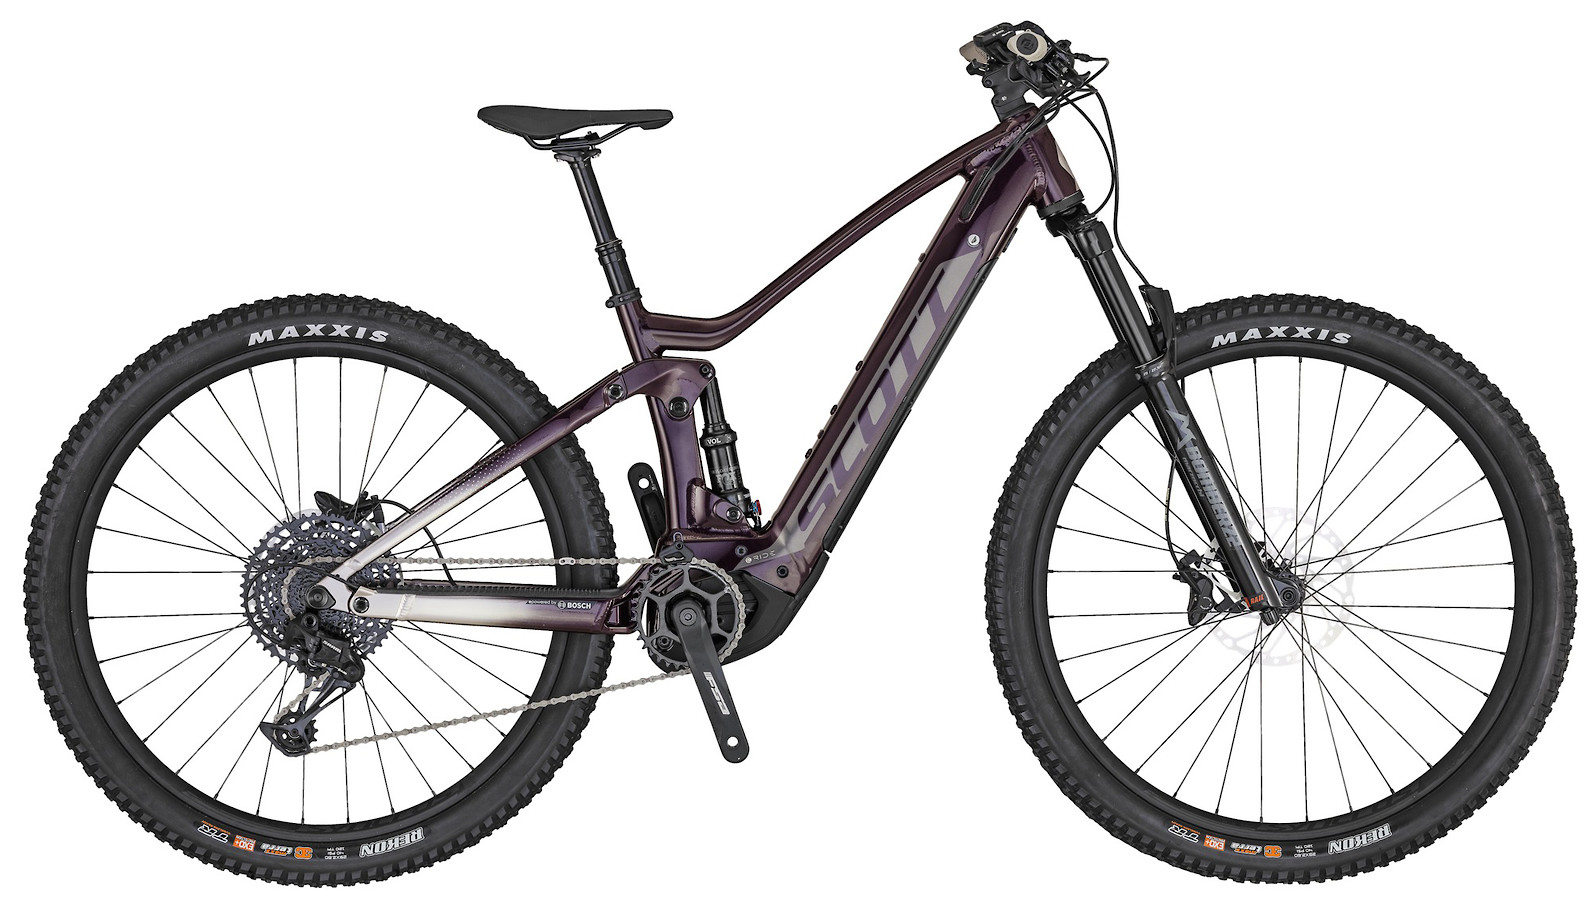 2020 Scott Strike eRIDE Contessa 910